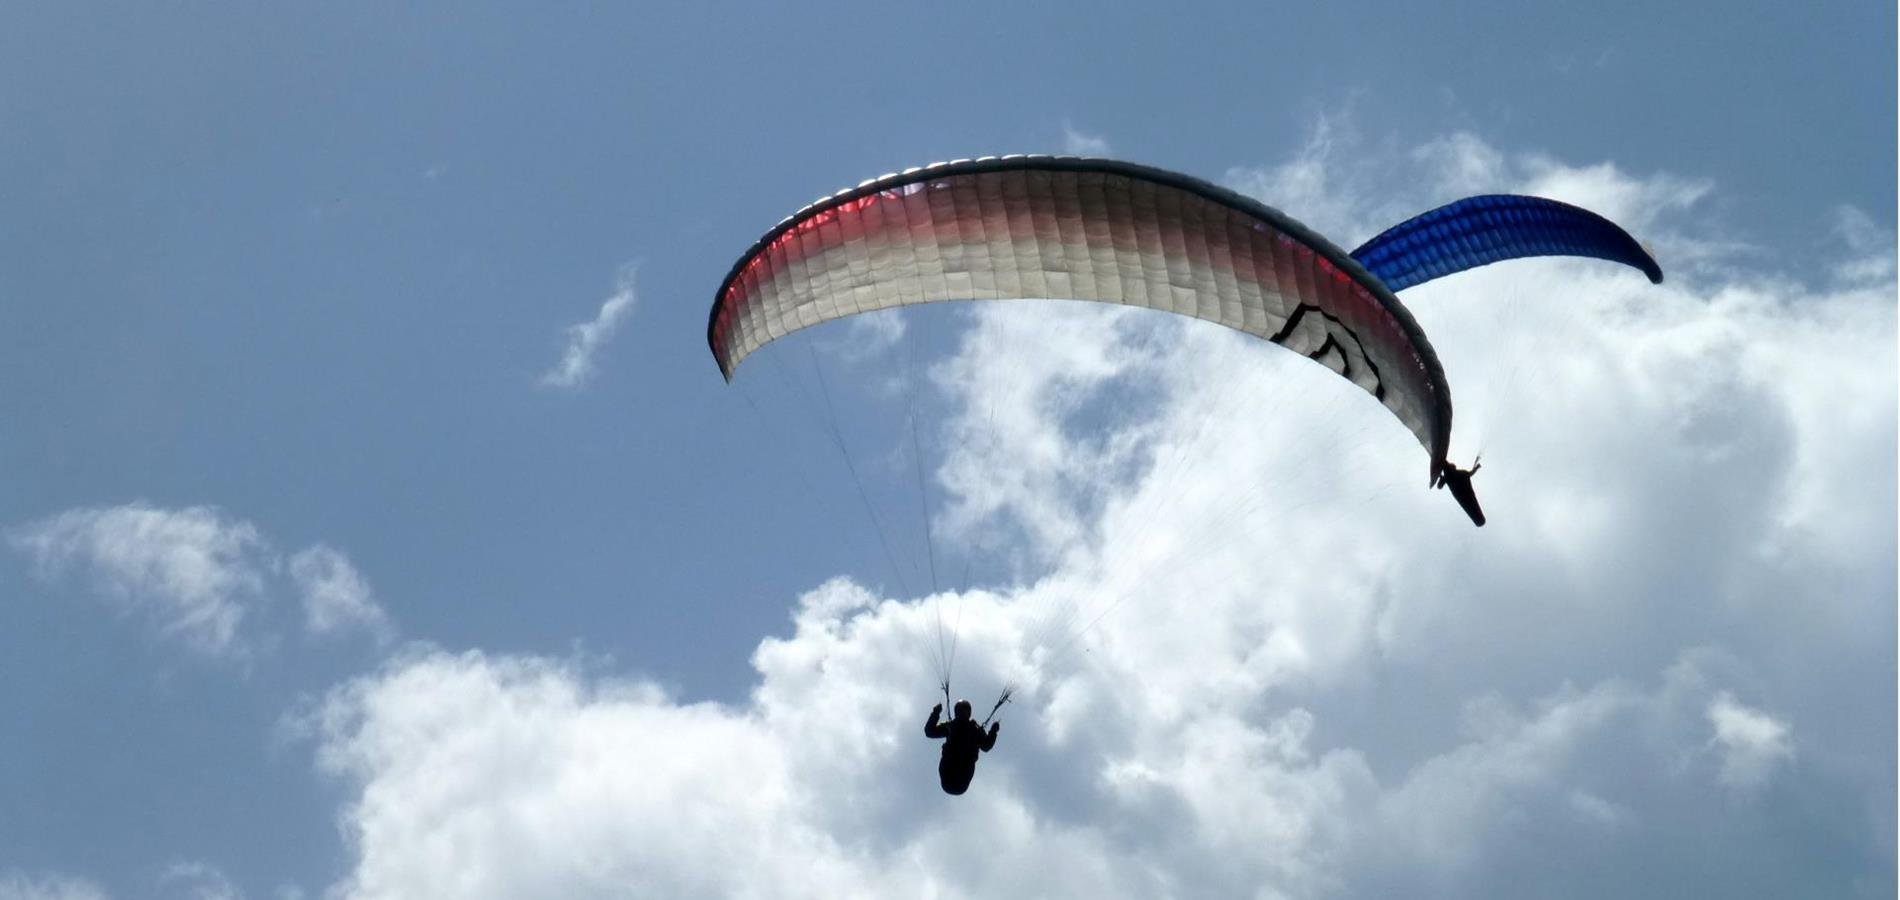 Paragliding in the Ultental Valley